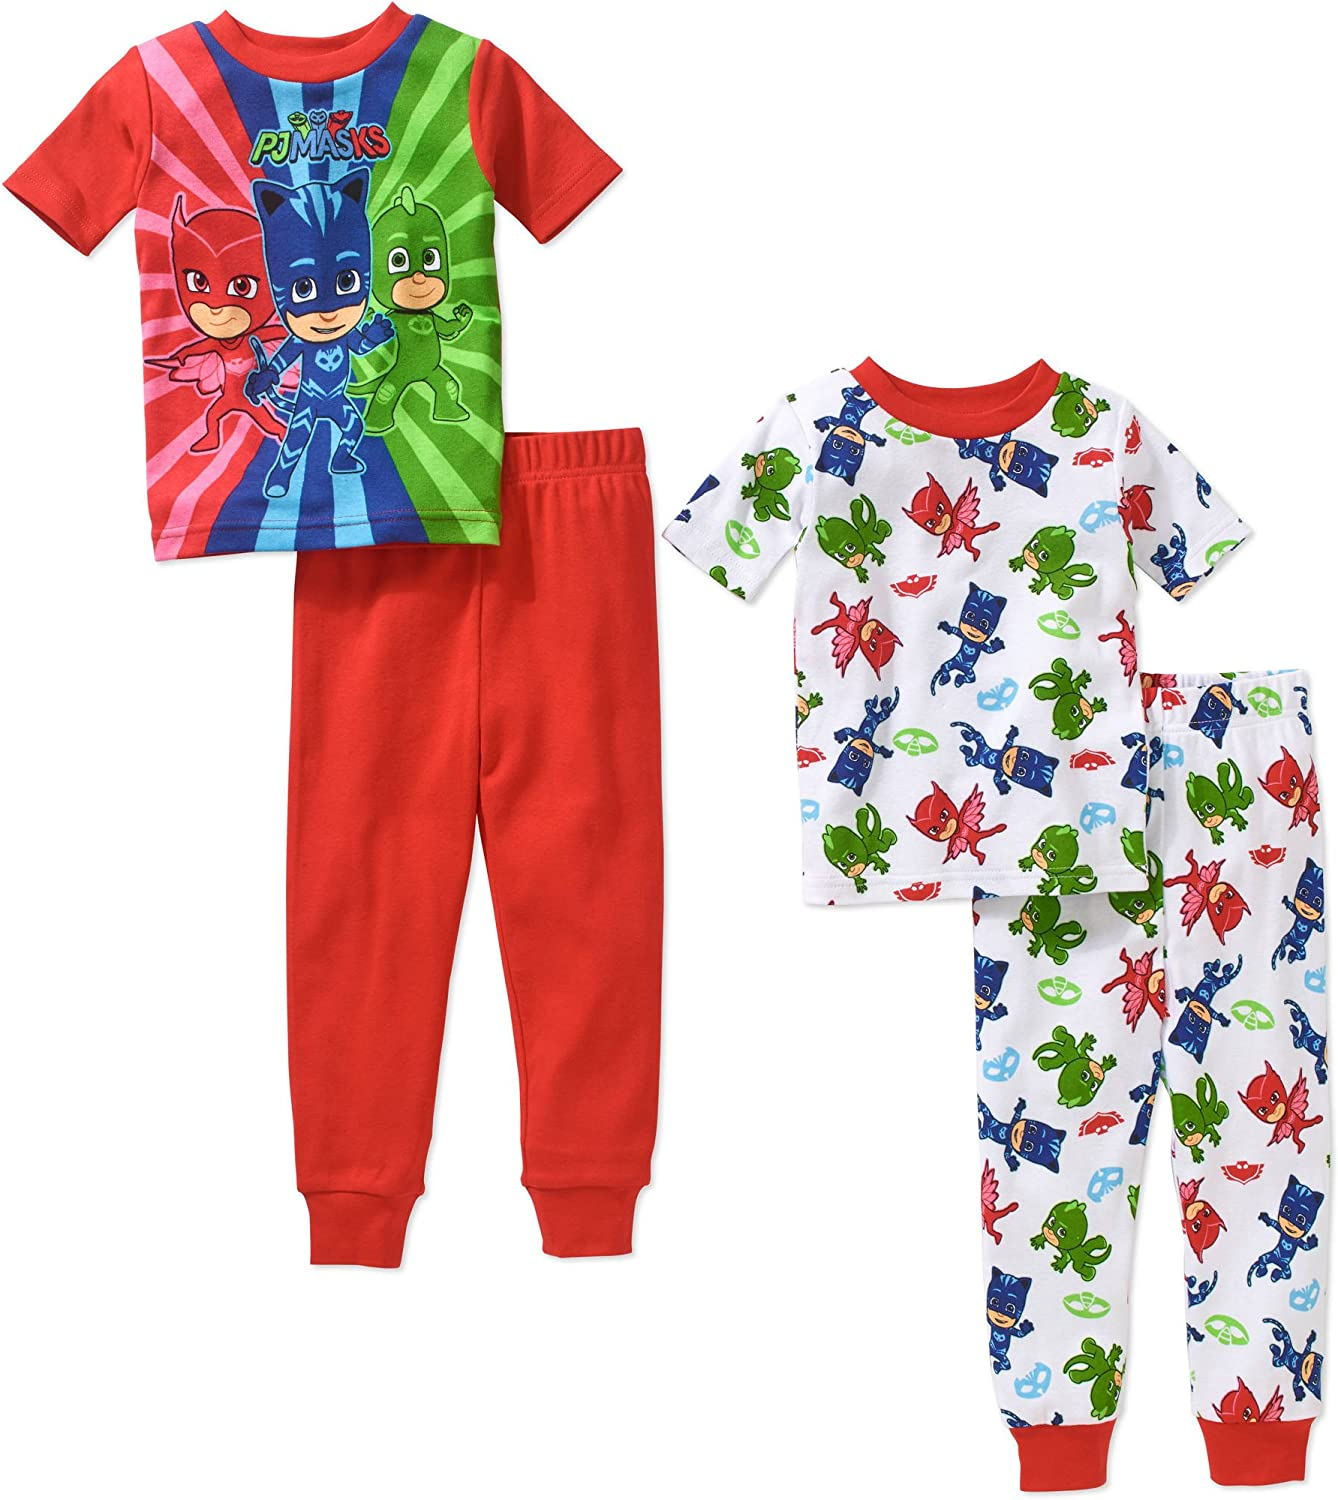 Clearance SALE Limited time PJ Masks Boy 4 Ranking TOP10 PC Short Sleeve Cotton Tight Pajama Size Fit Set